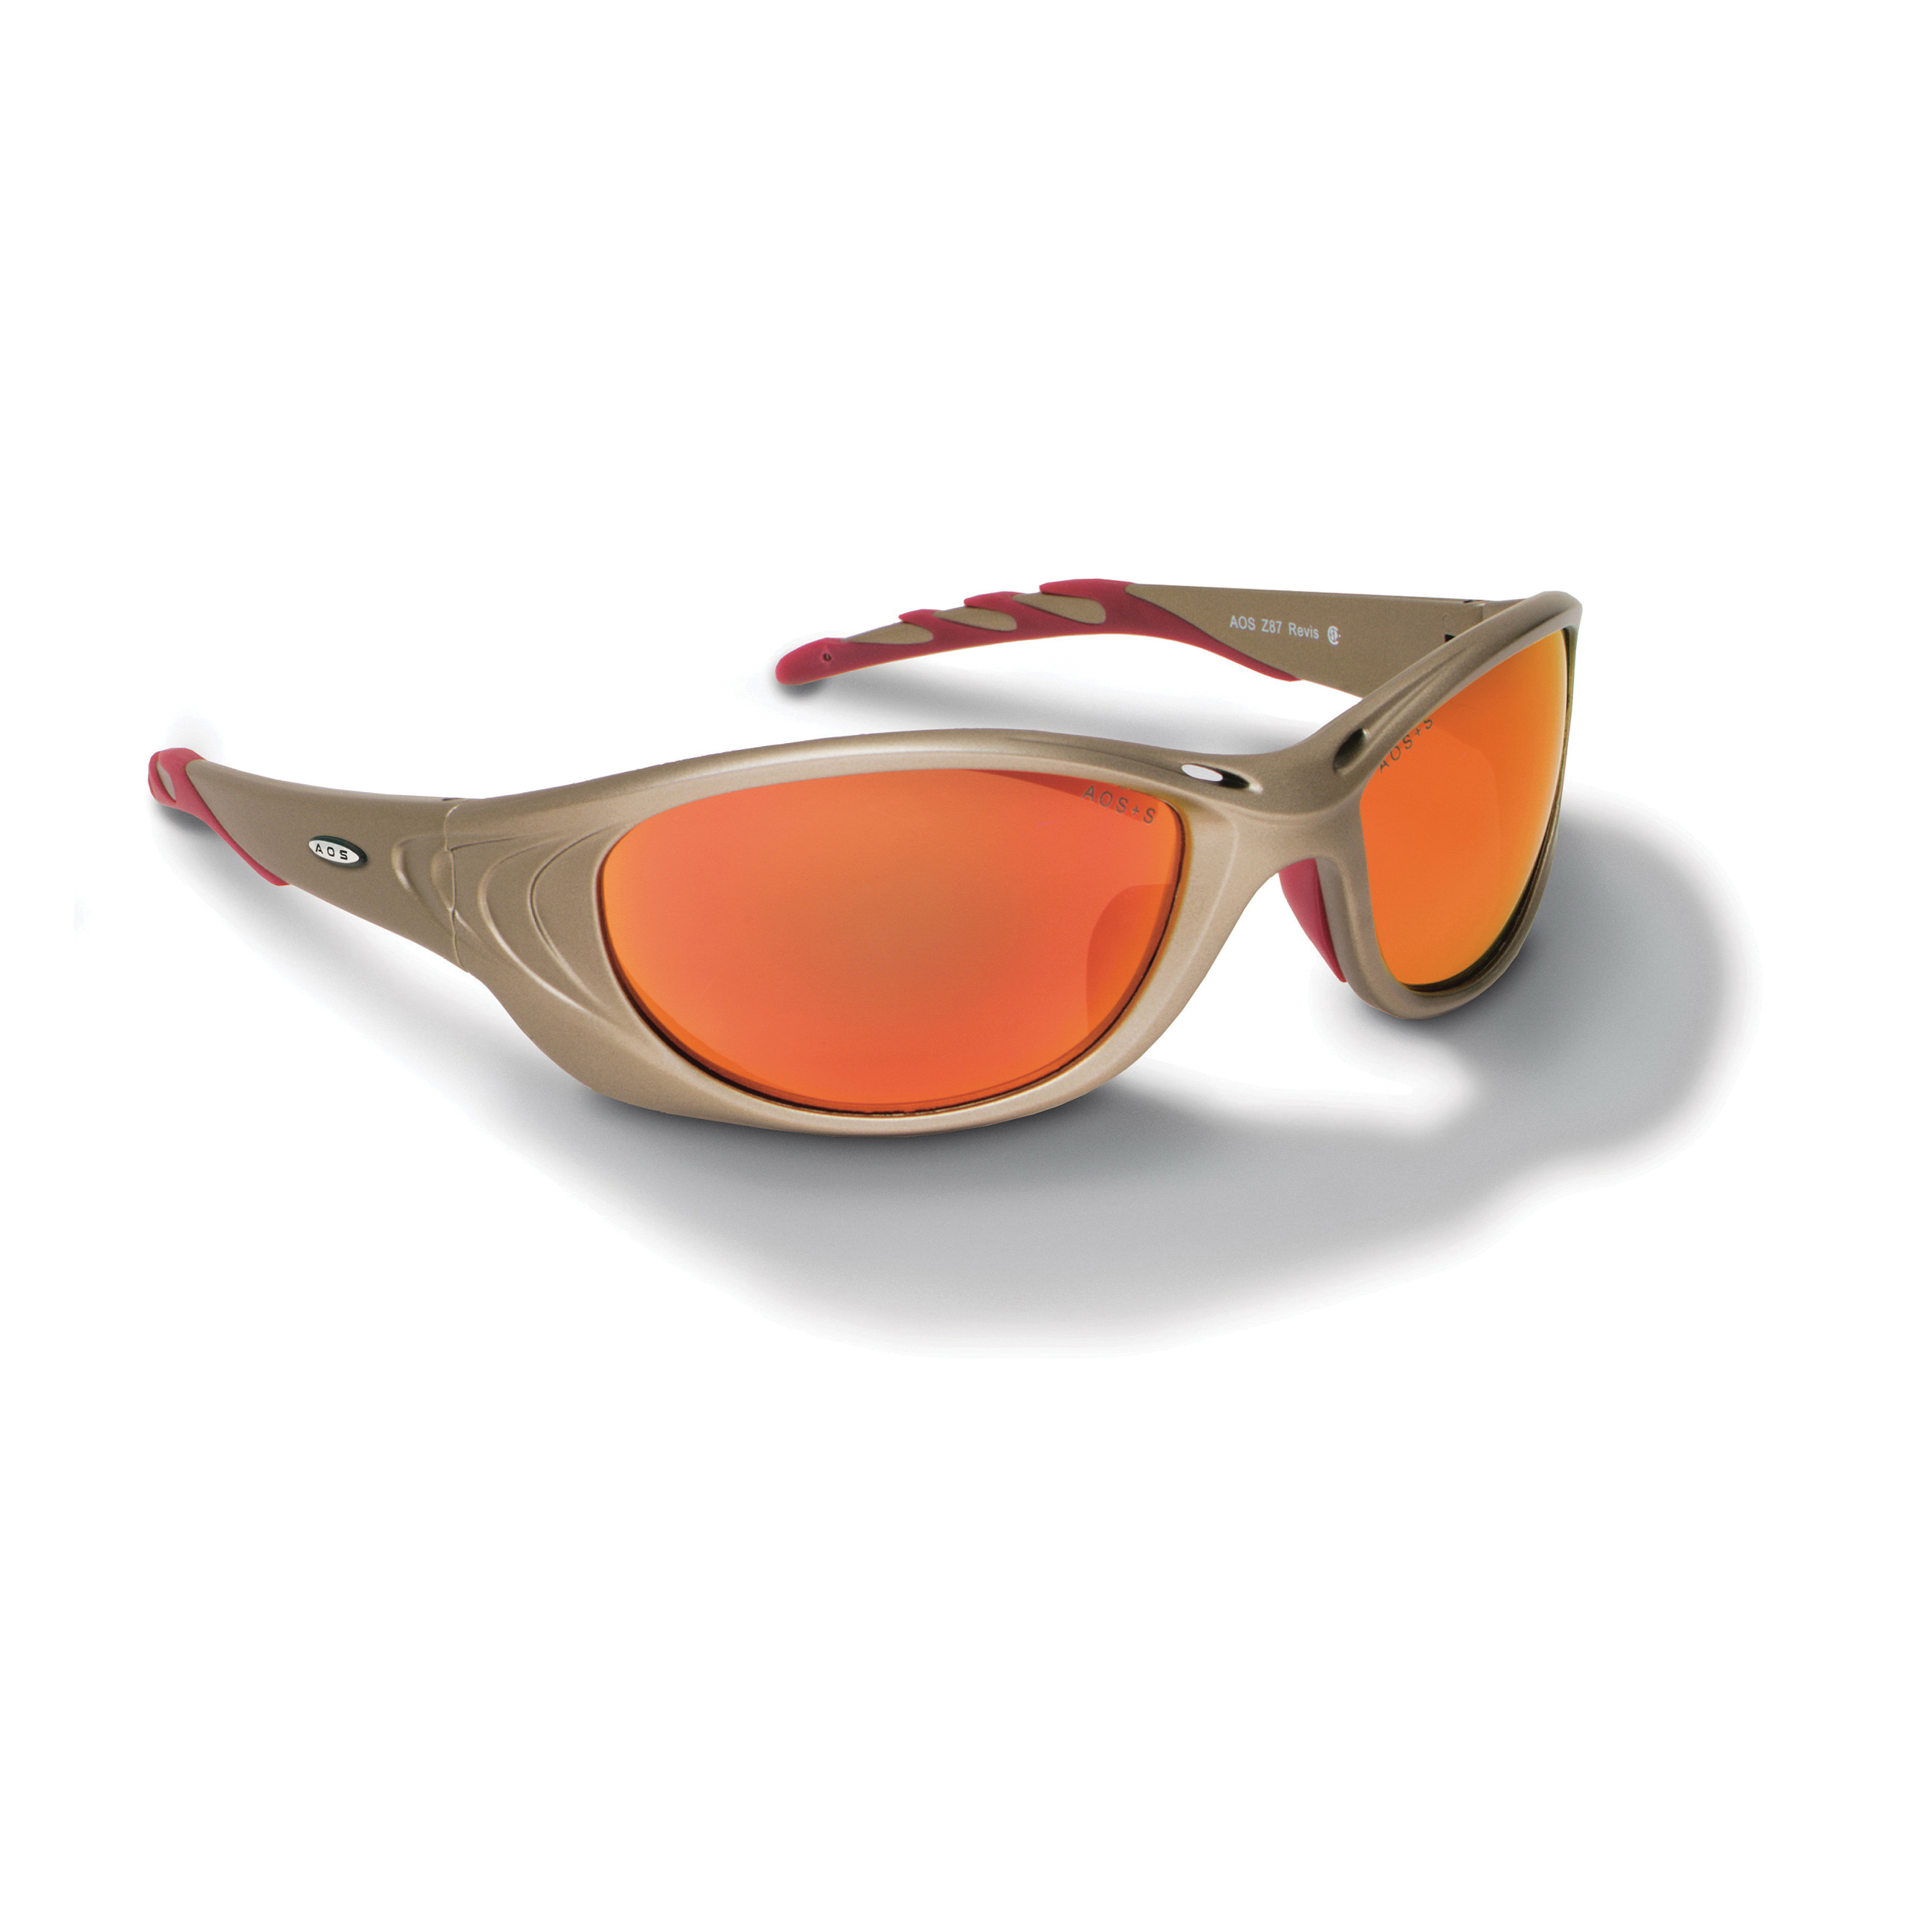 3M™ Fuel™ 078371-62153 11650-00000-10 2 Series Premium Protective Eyewear, Anti-Scratch Red Mirror Lens, Full Framed Metallic Sand Plastic Frame, Polycarbonate Lens, Specifications Met: ANSI Z87.1-2015, CSA Z94.3